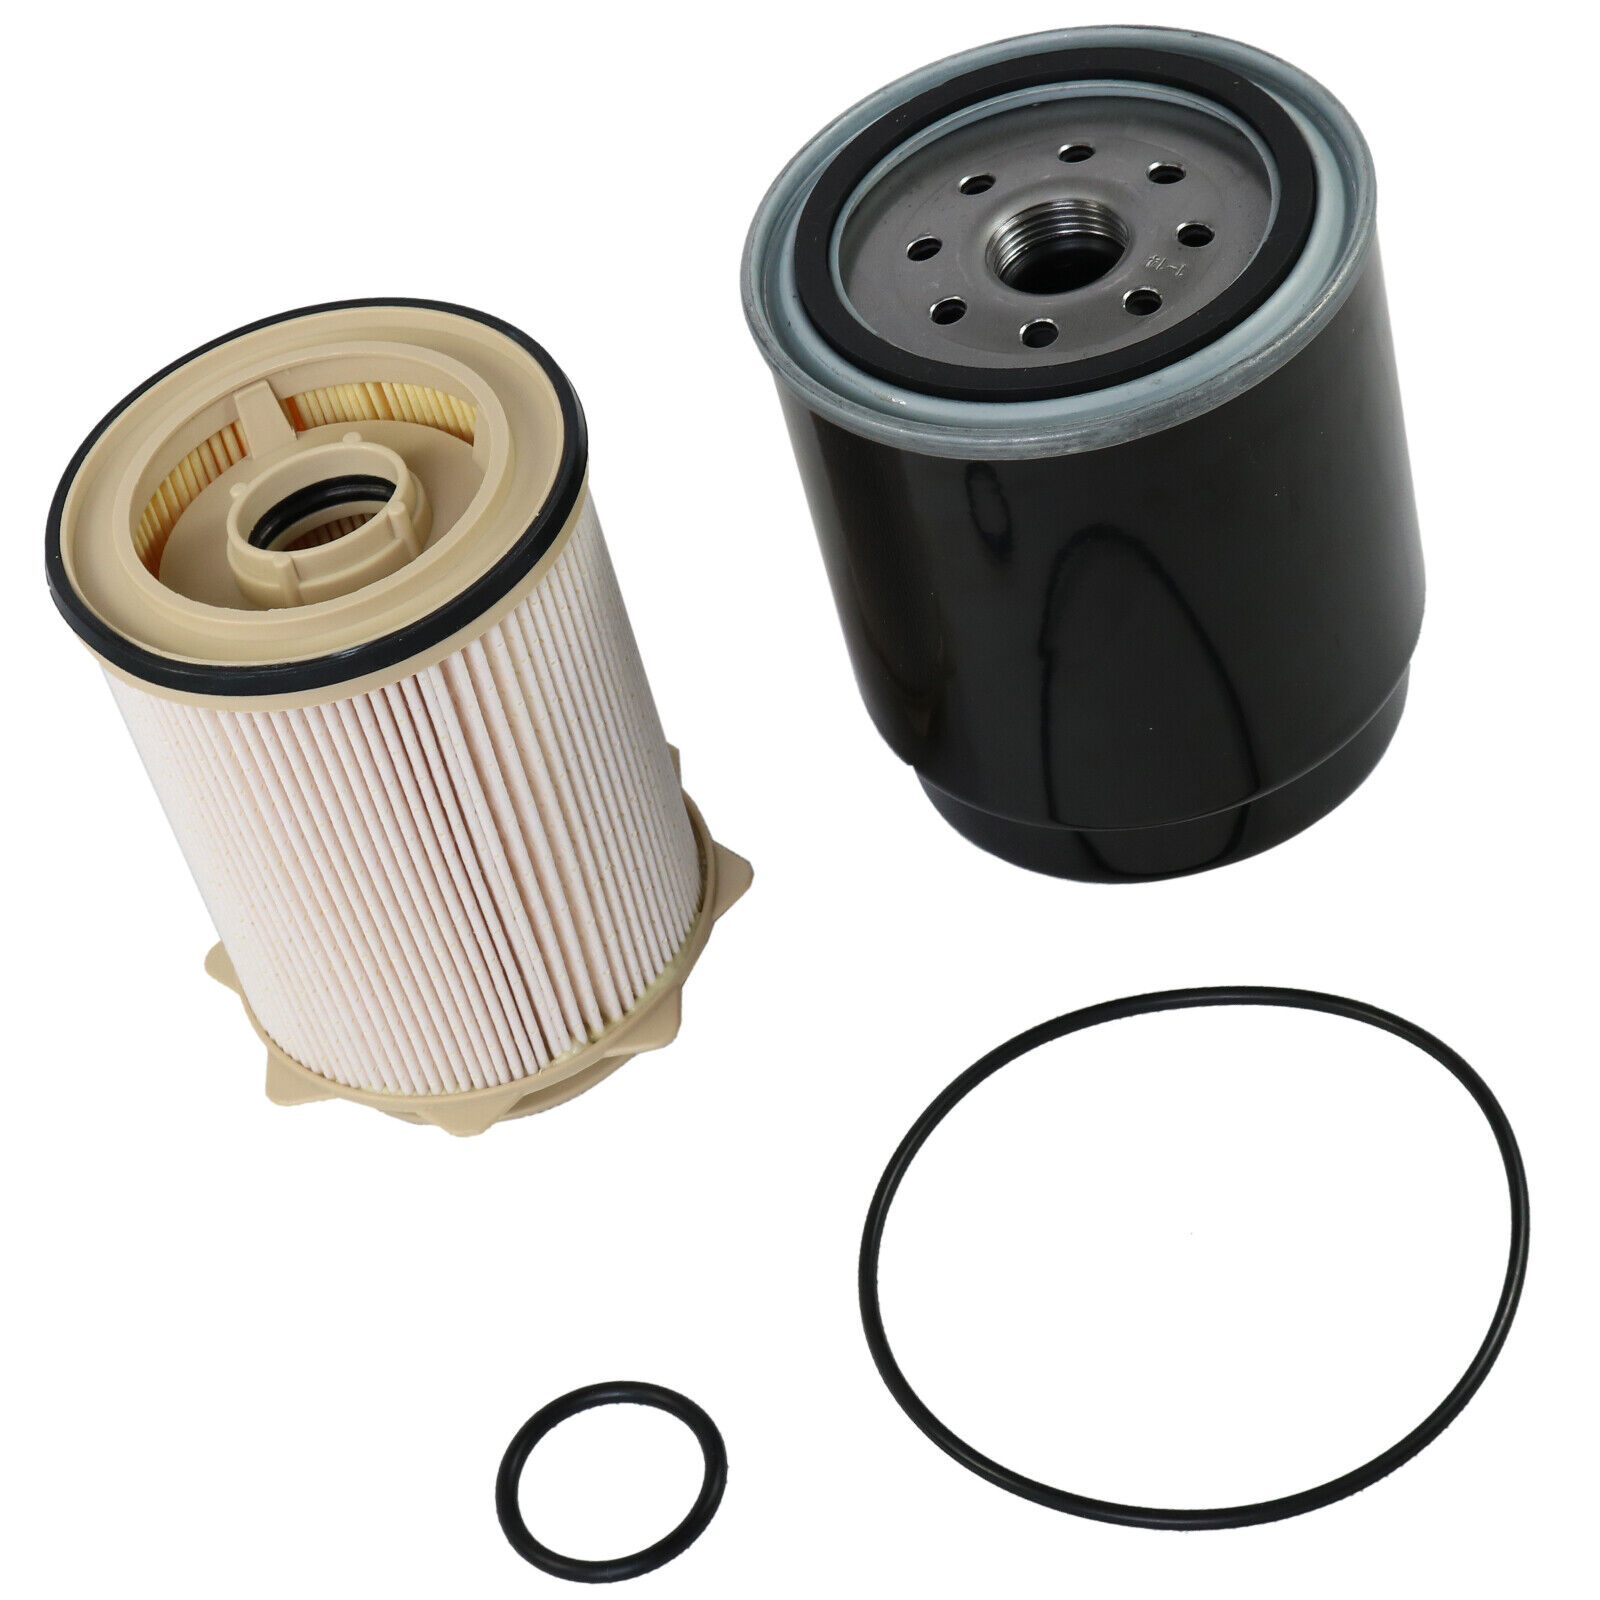 hight resolution of diesel fuel filter kit for 2013 2017 dodge ram 6 7l cummins 2500 3500 4500 5500